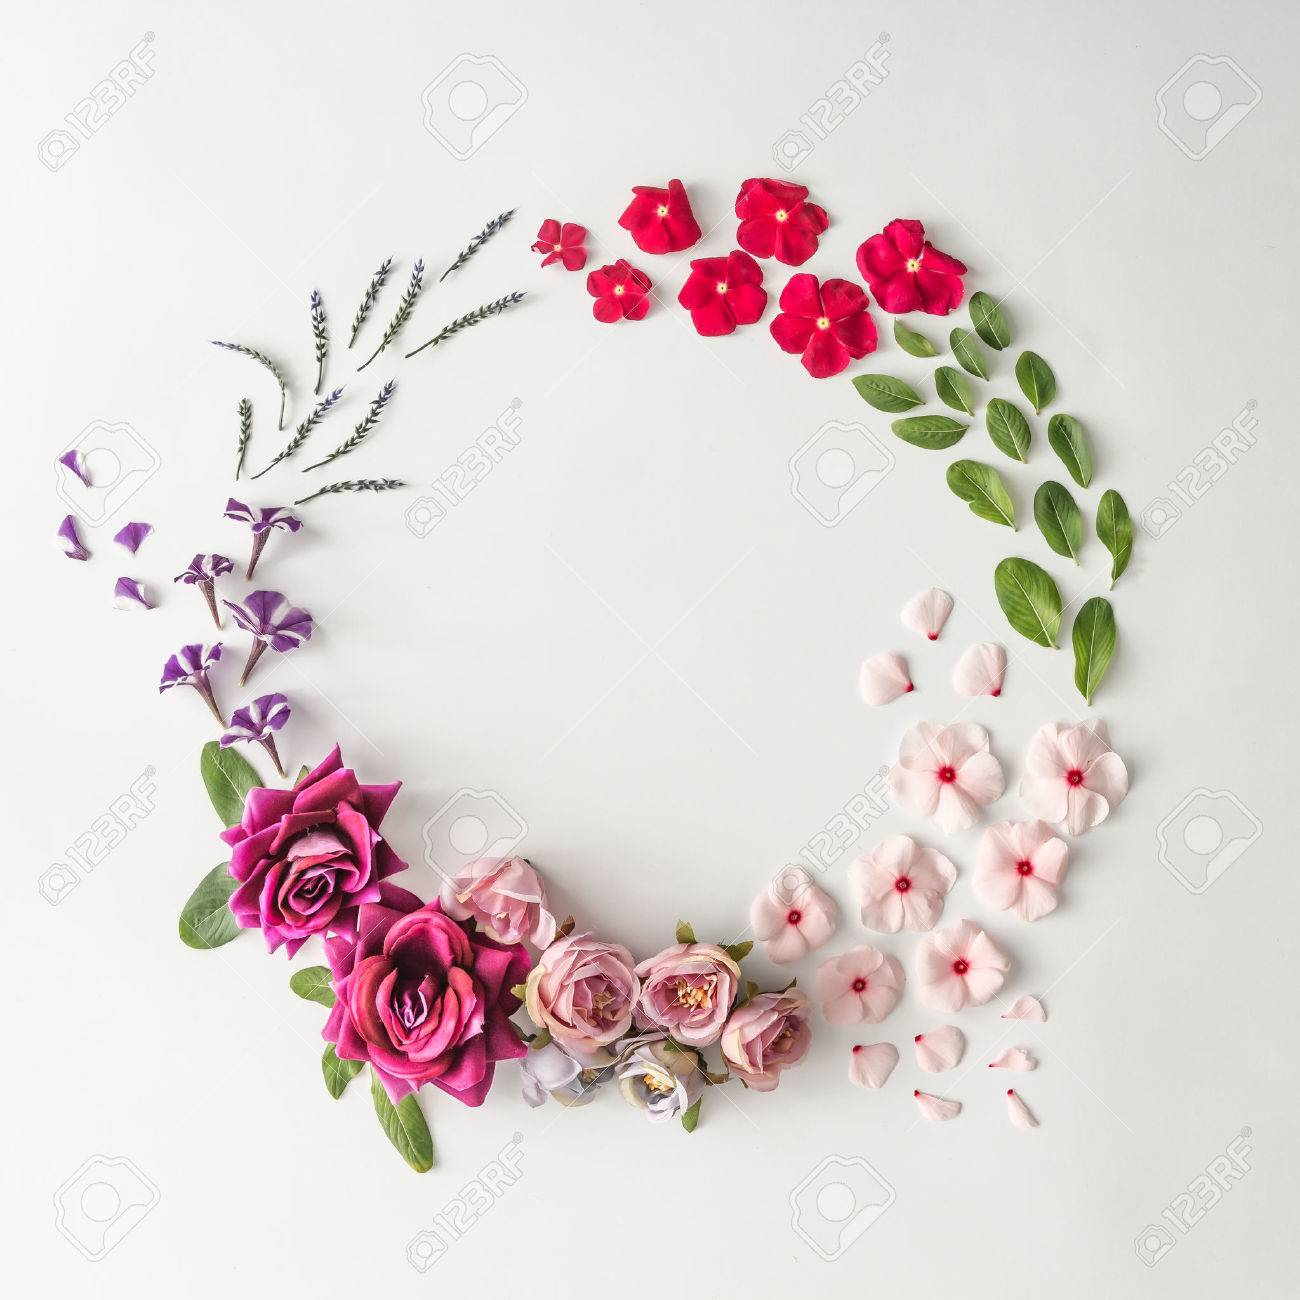 Creative layout made of various flowers with copy space. Flat lay. Nature background - 85113244